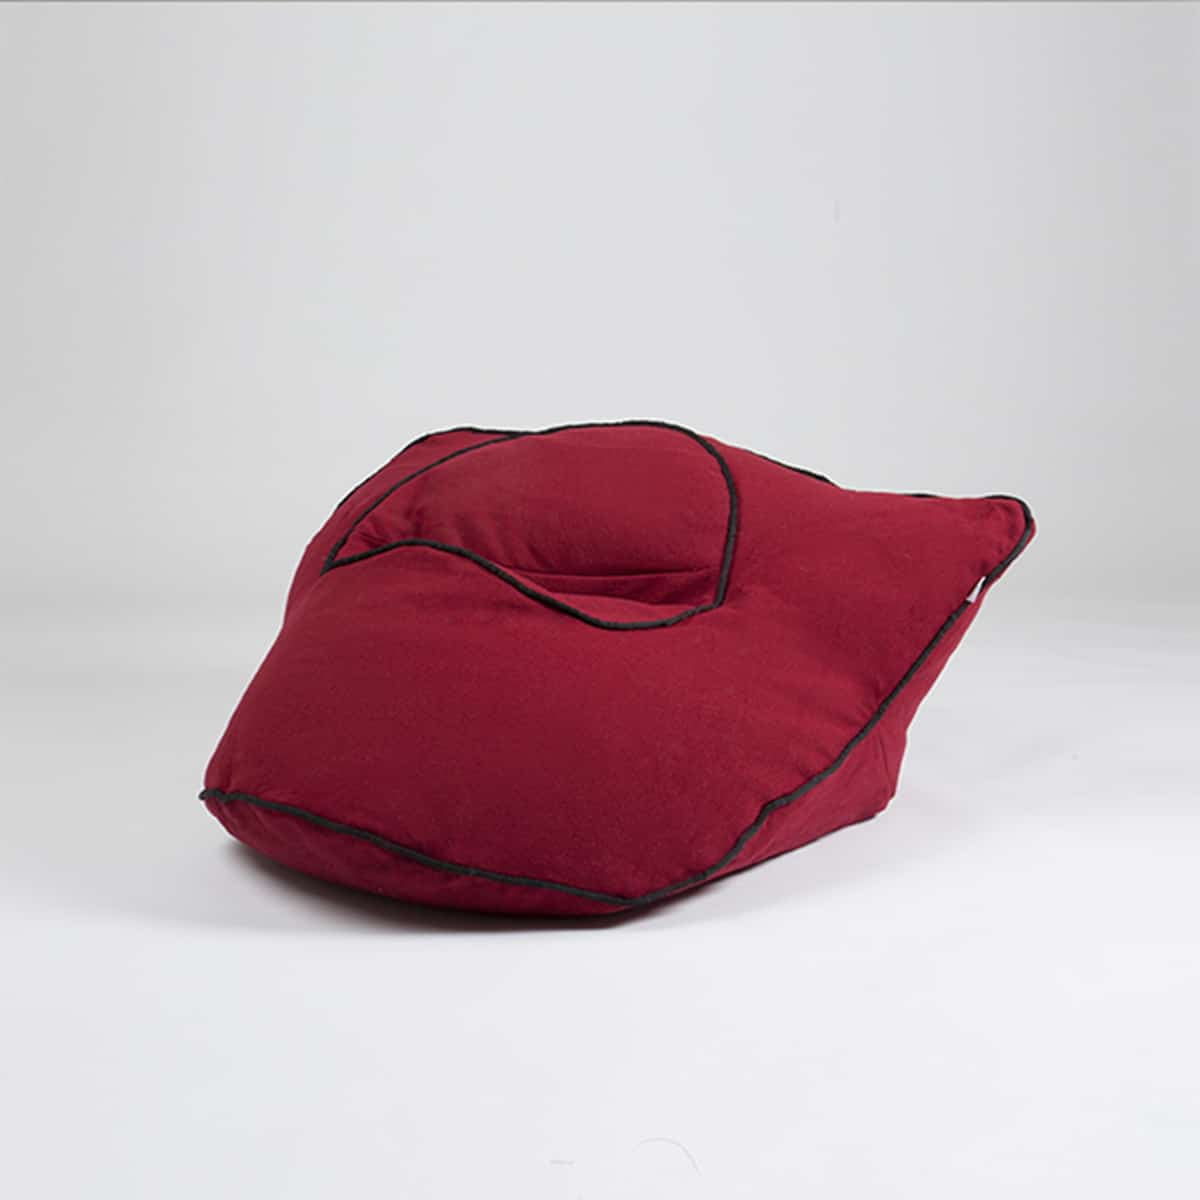 pouf barnabe the brave saintesprit rouge zeeloft 1